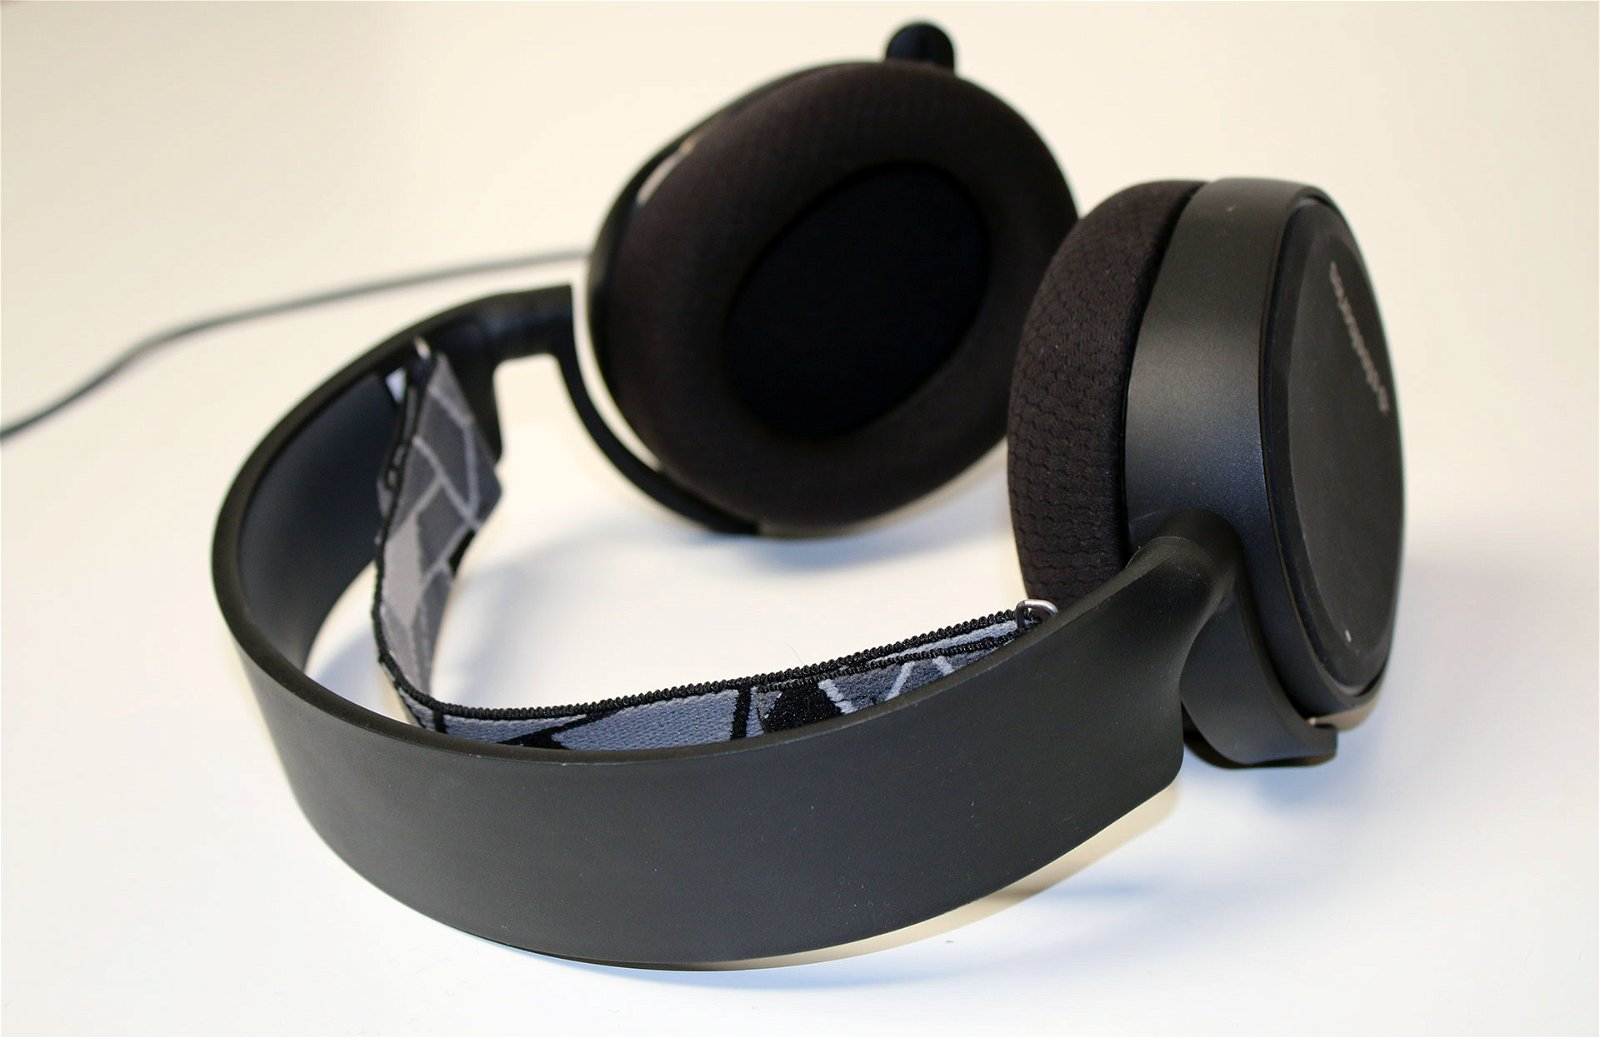 steelseries arctis 3 headset review. Black Bedroom Furniture Sets. Home Design Ideas